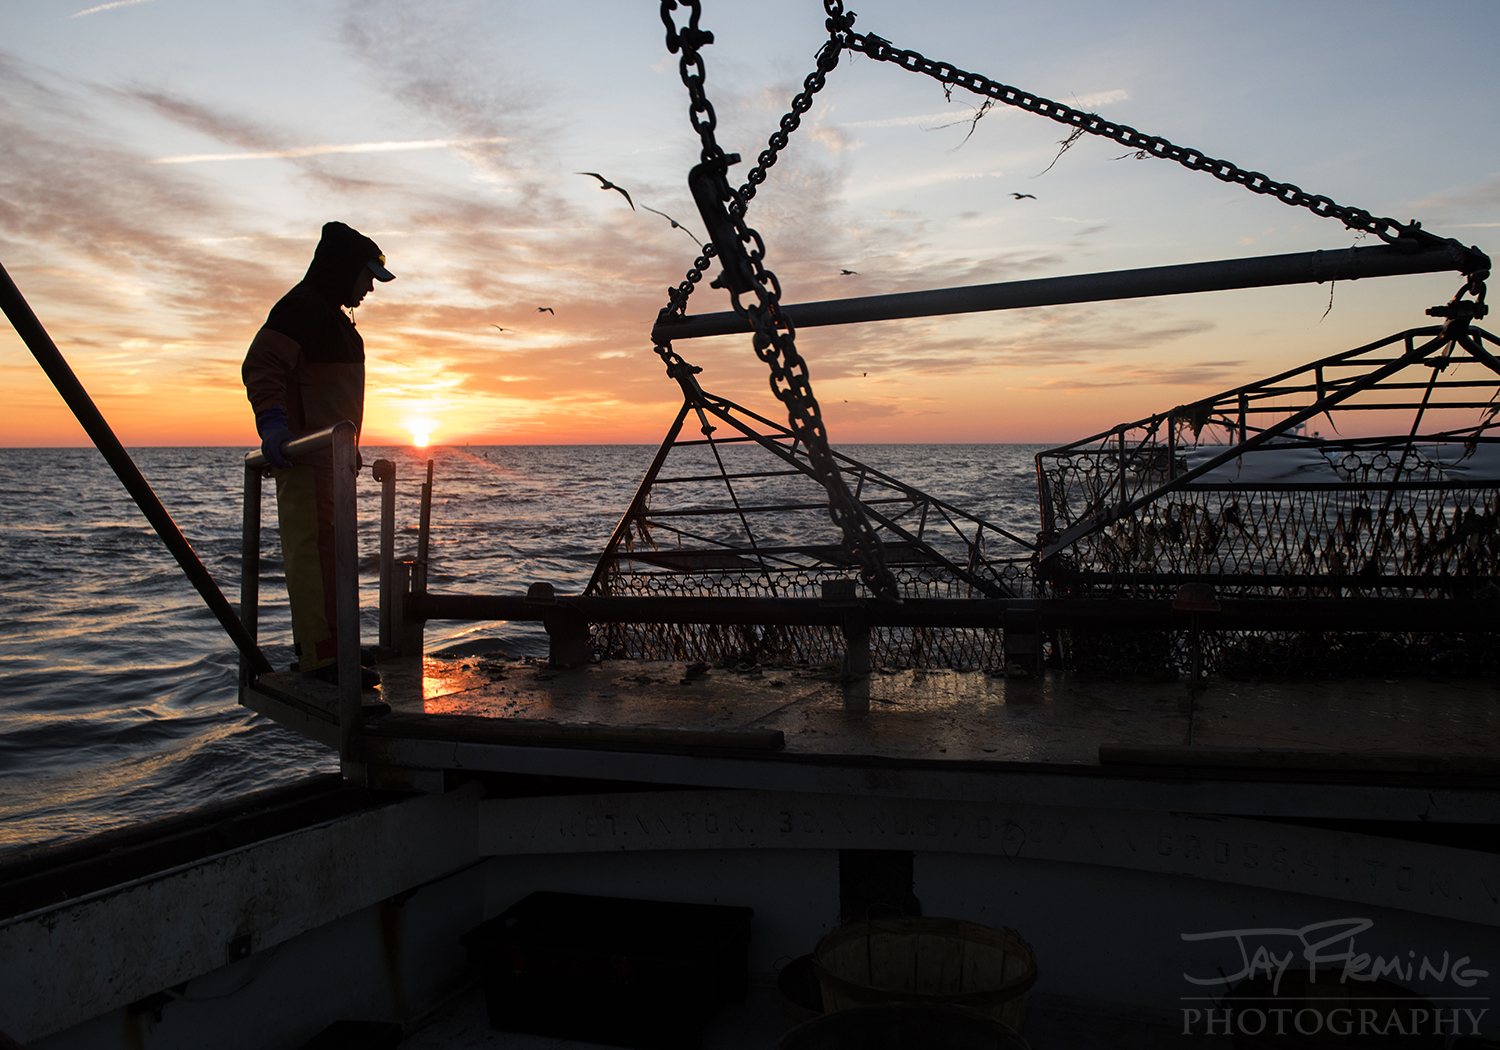 Conch Dredging - Delaware Bay© Jay Fleming13.jpg